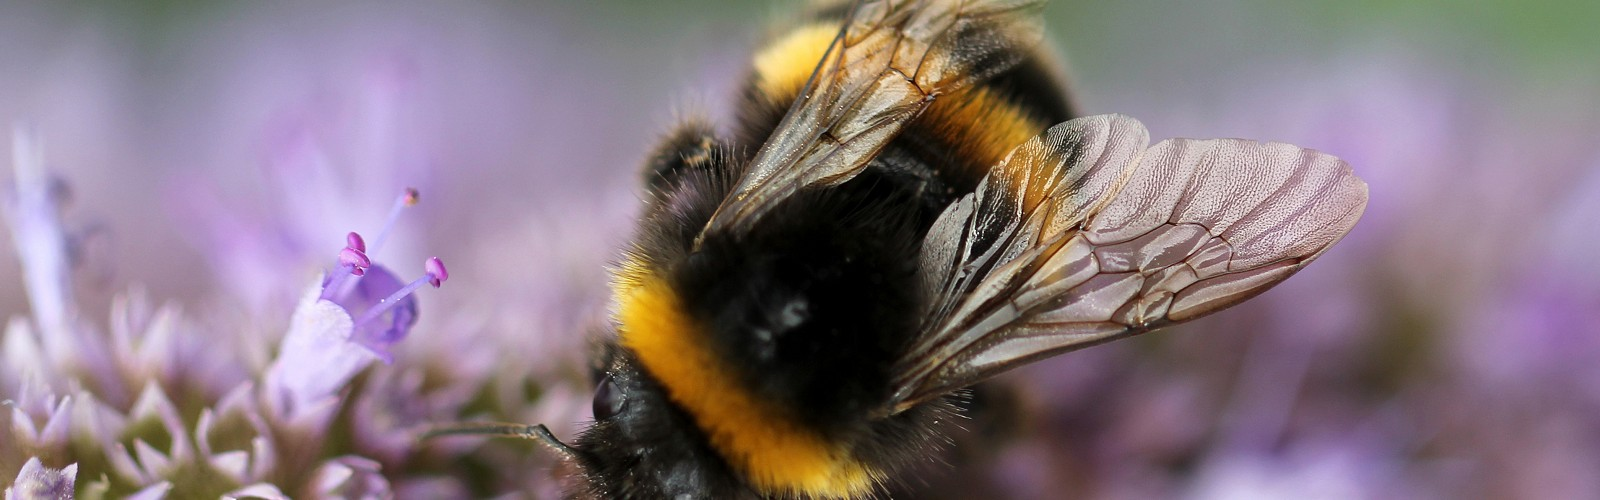 bumblebee on scabious (image: Sandy Millar on Unsplash)